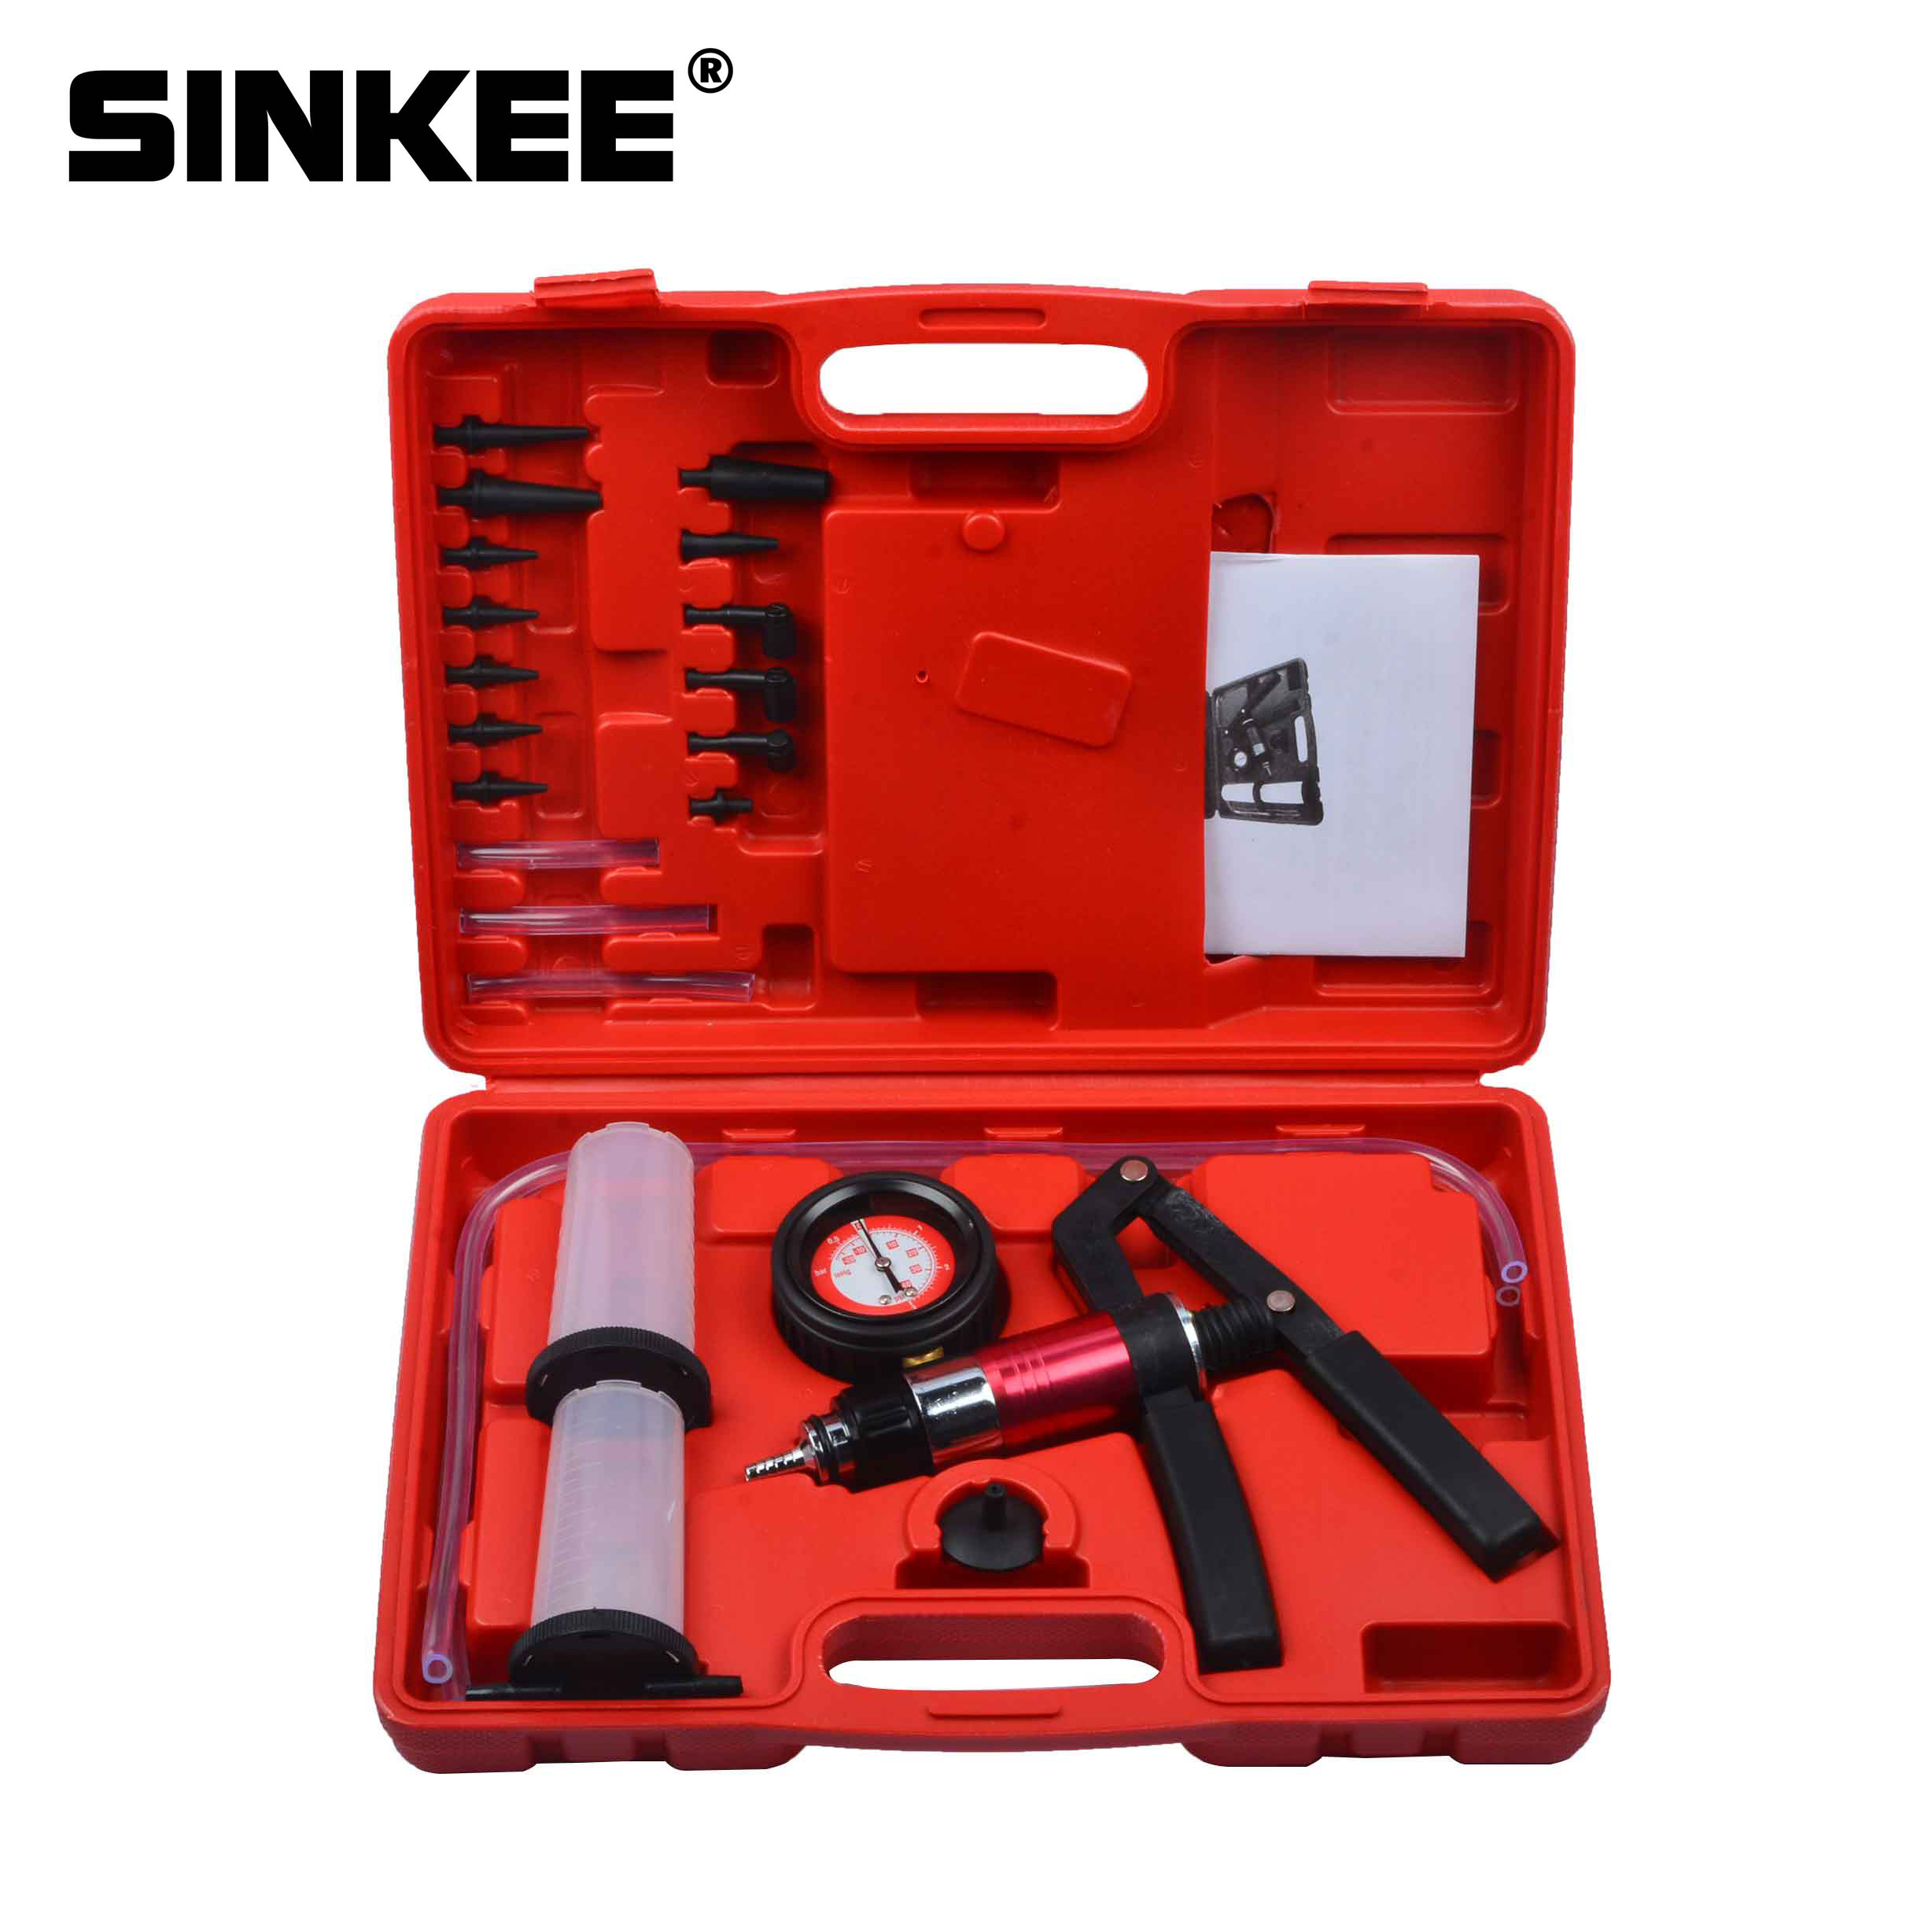 Hand Held Vacuum Pump Brake Bleeder Set Bleed tester Tool Kit SK1270